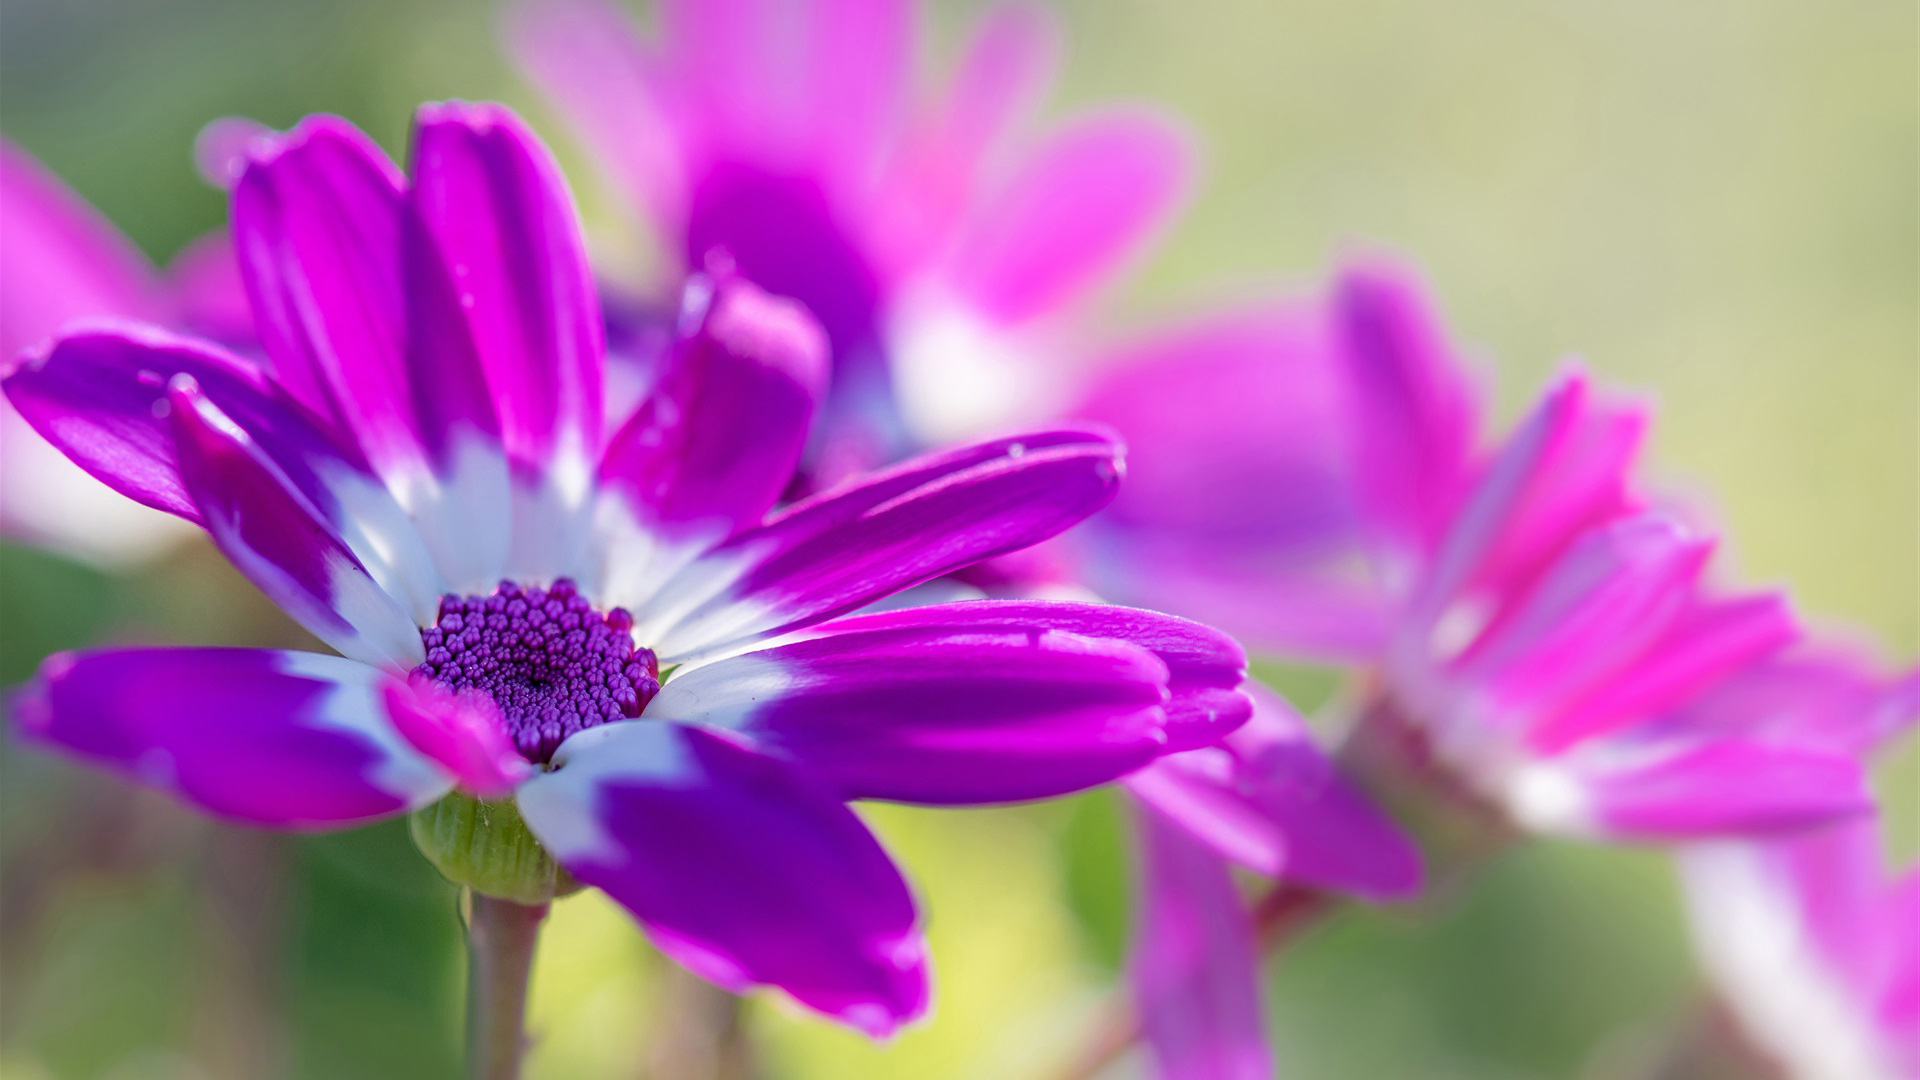 Best HD Wallpapers for Laptop 1080p with African Daisy Flower